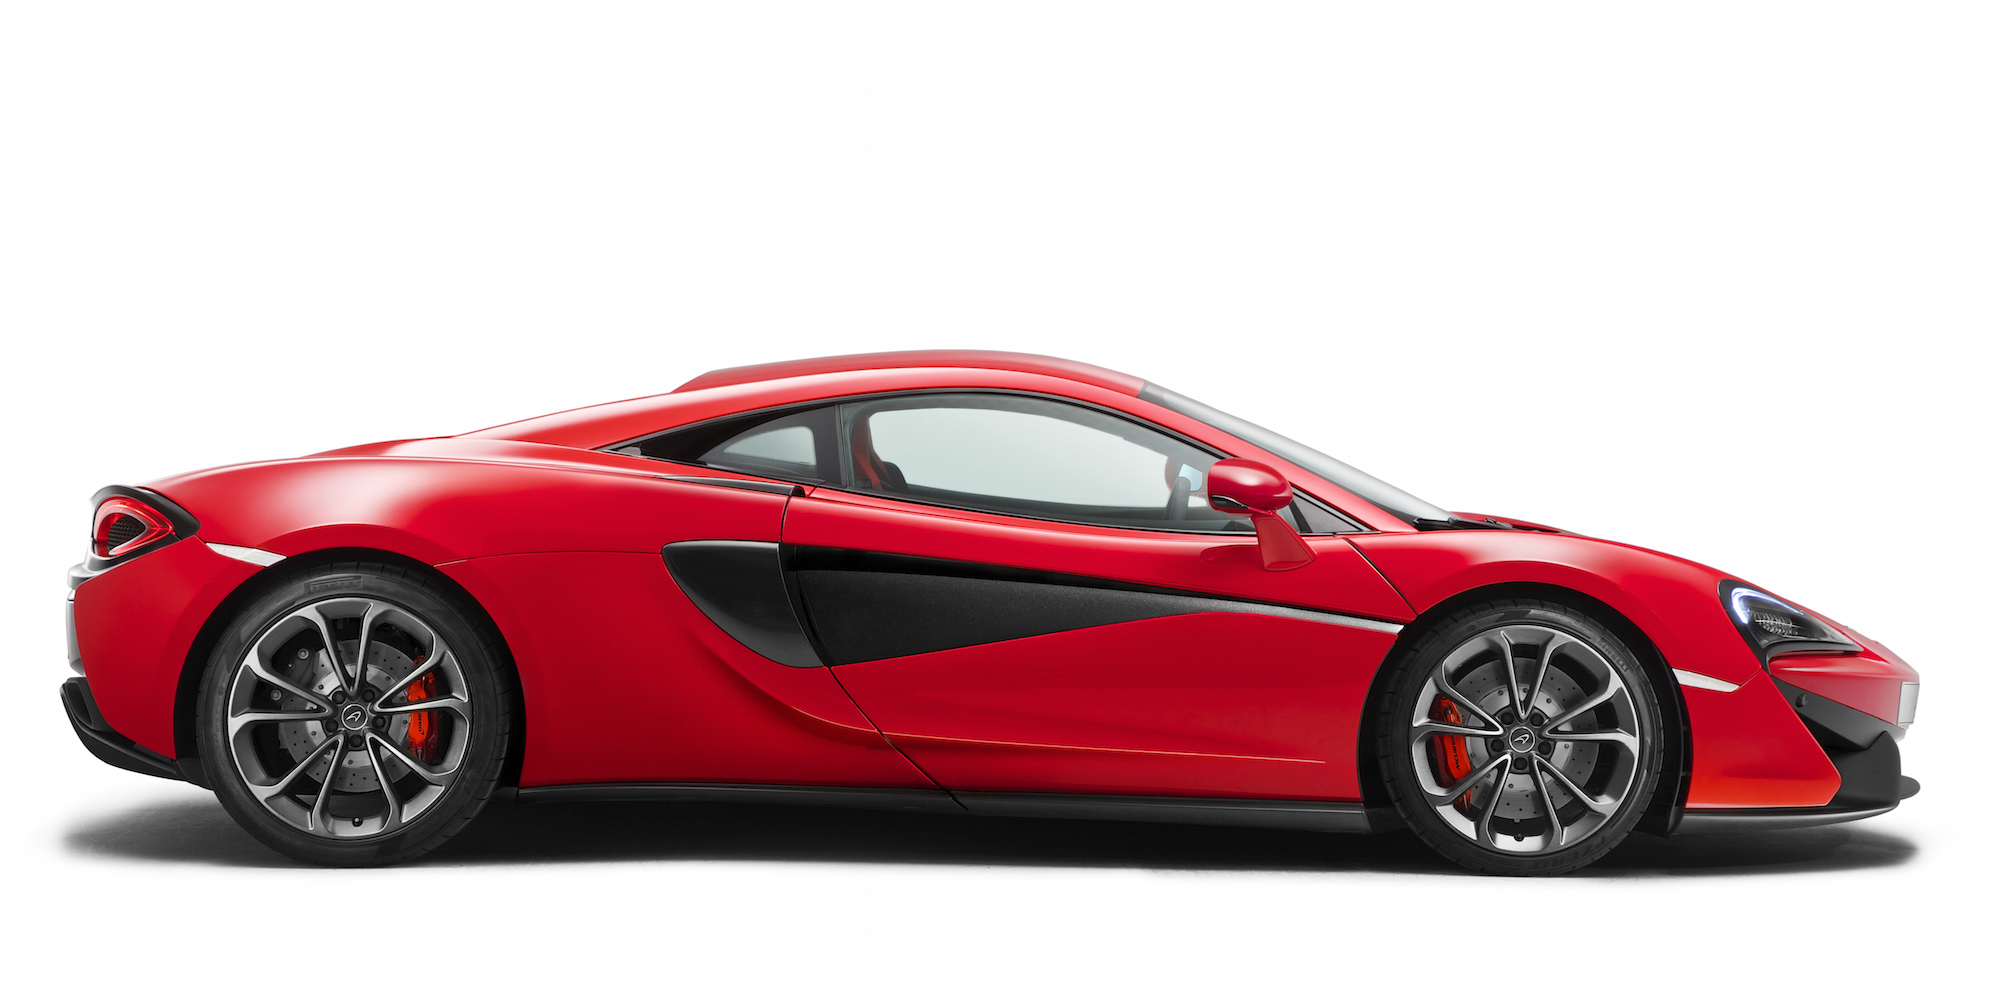 Mclaren 570s And 540c Pricing British Supercar Brand Cuts Price Of Entry By 110k Update